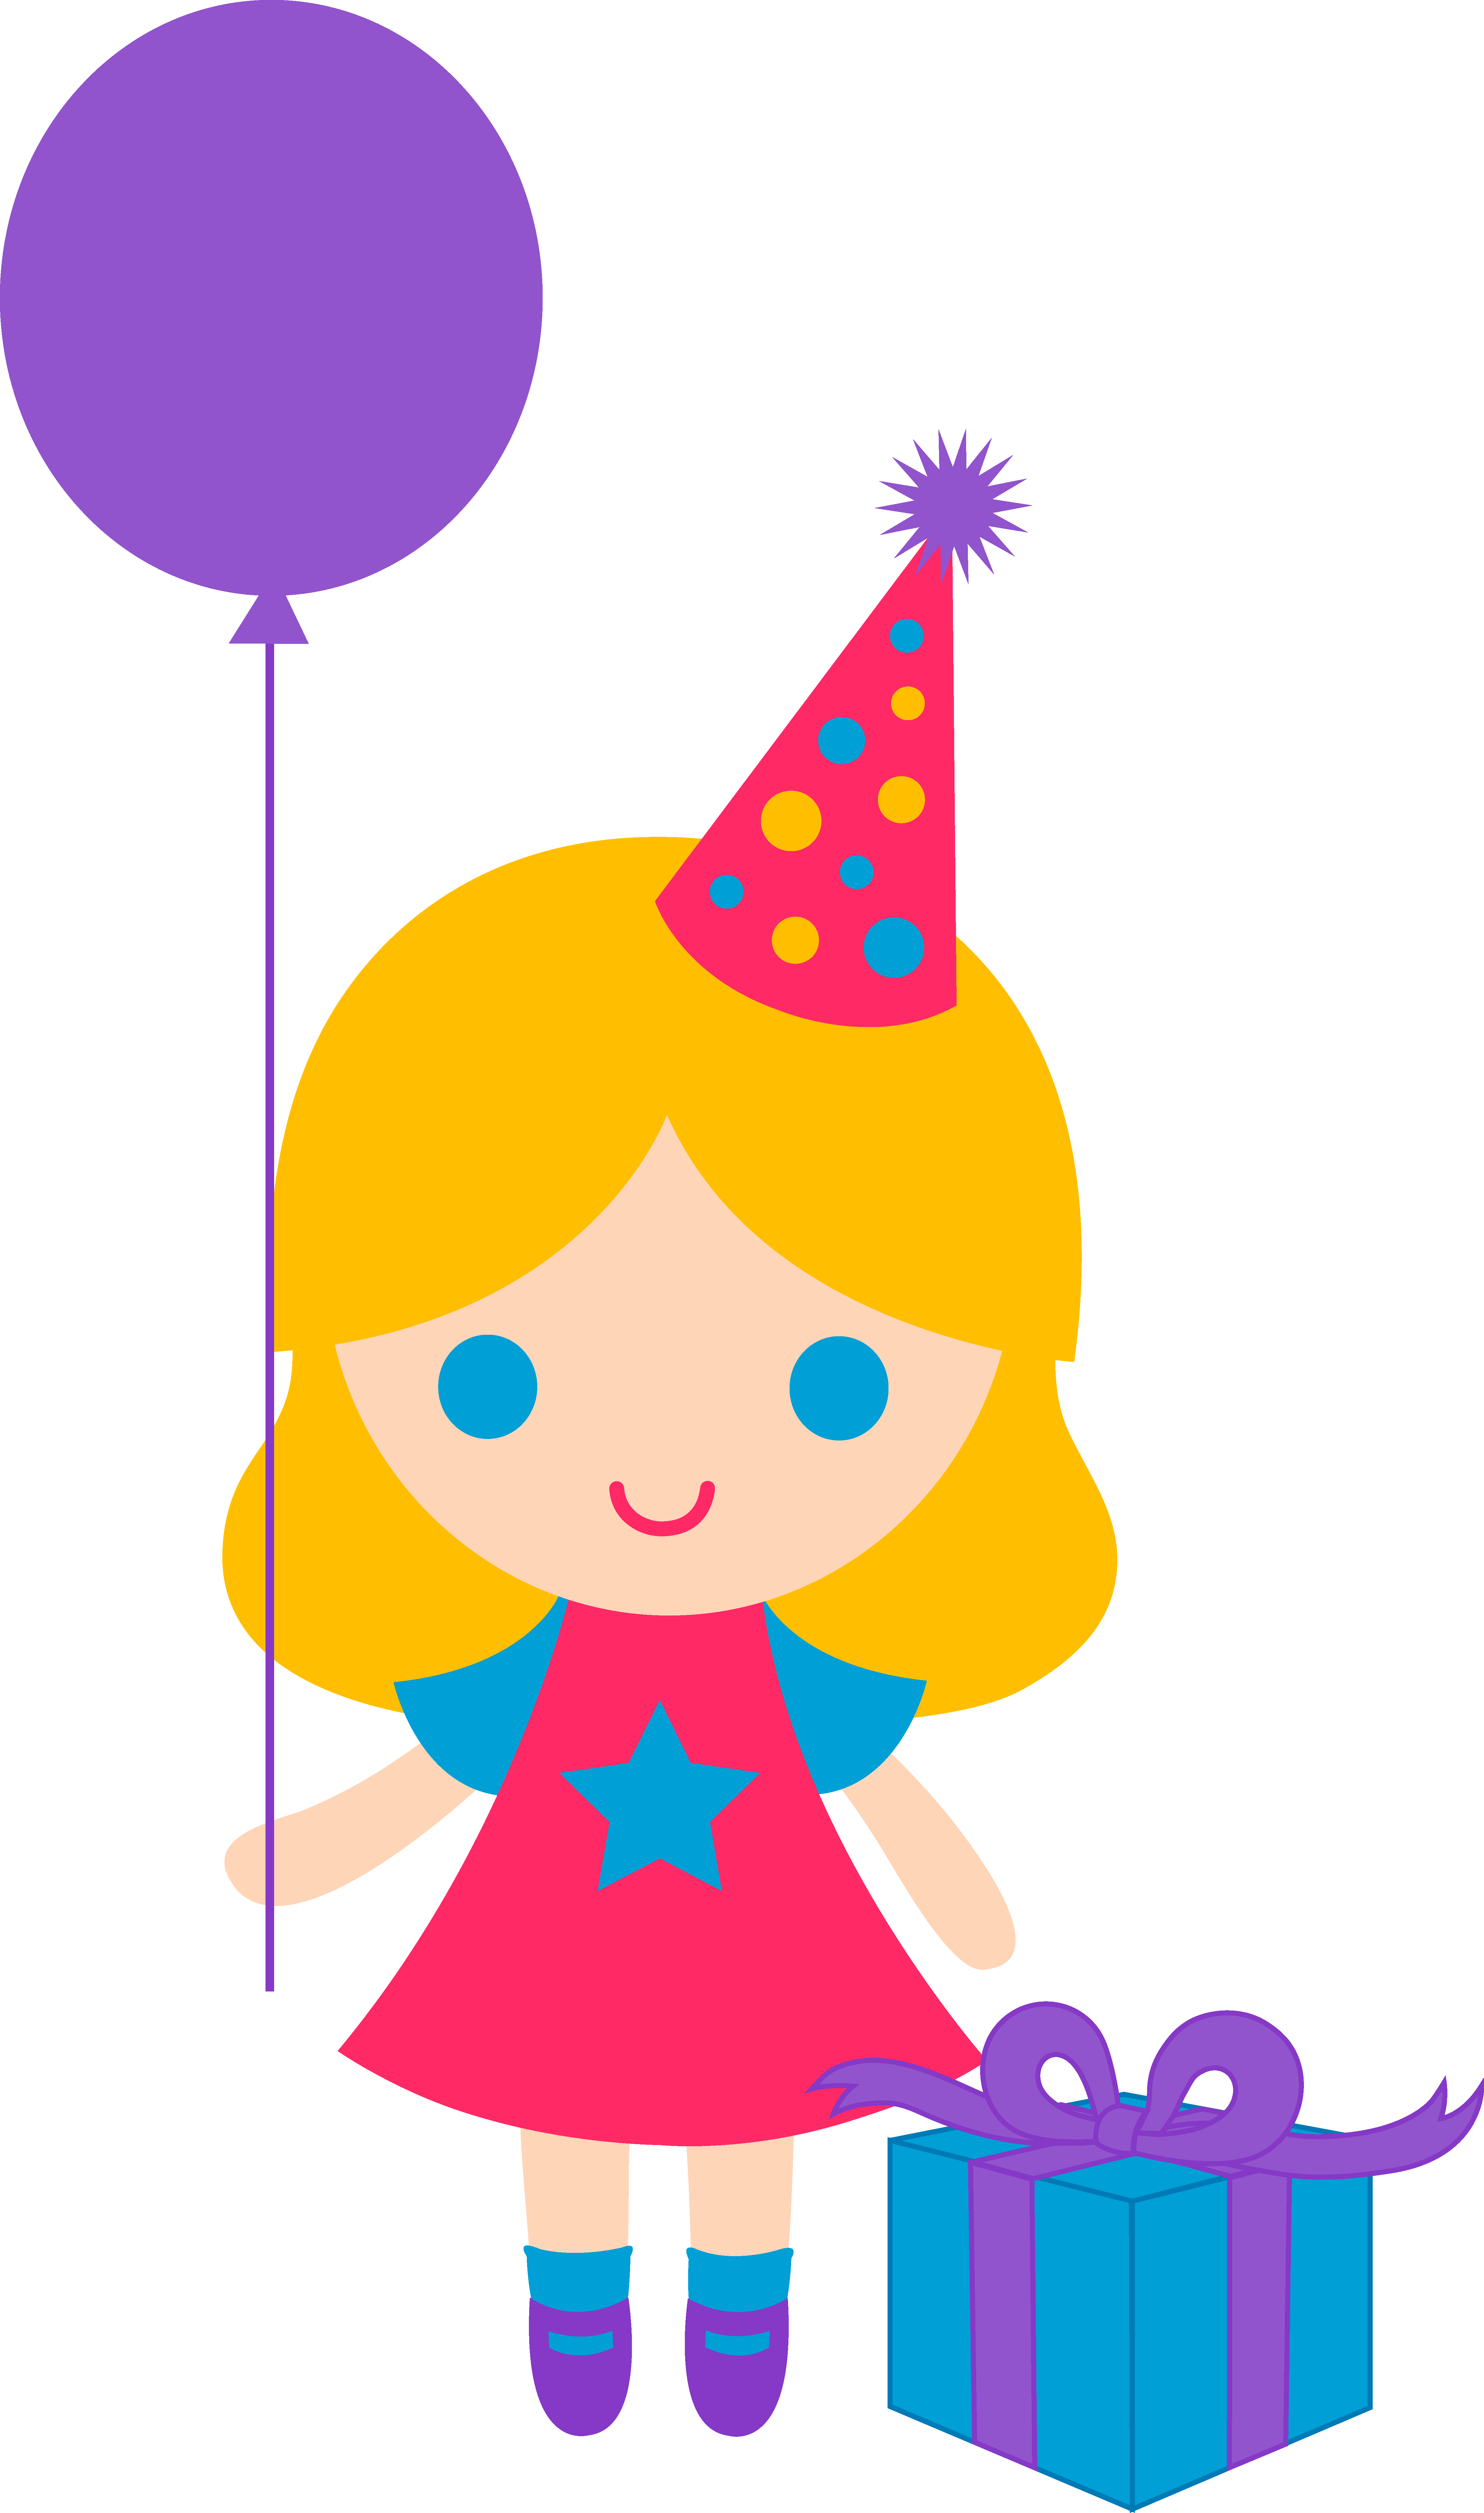 Lds clipart birthday. Images of baby girls